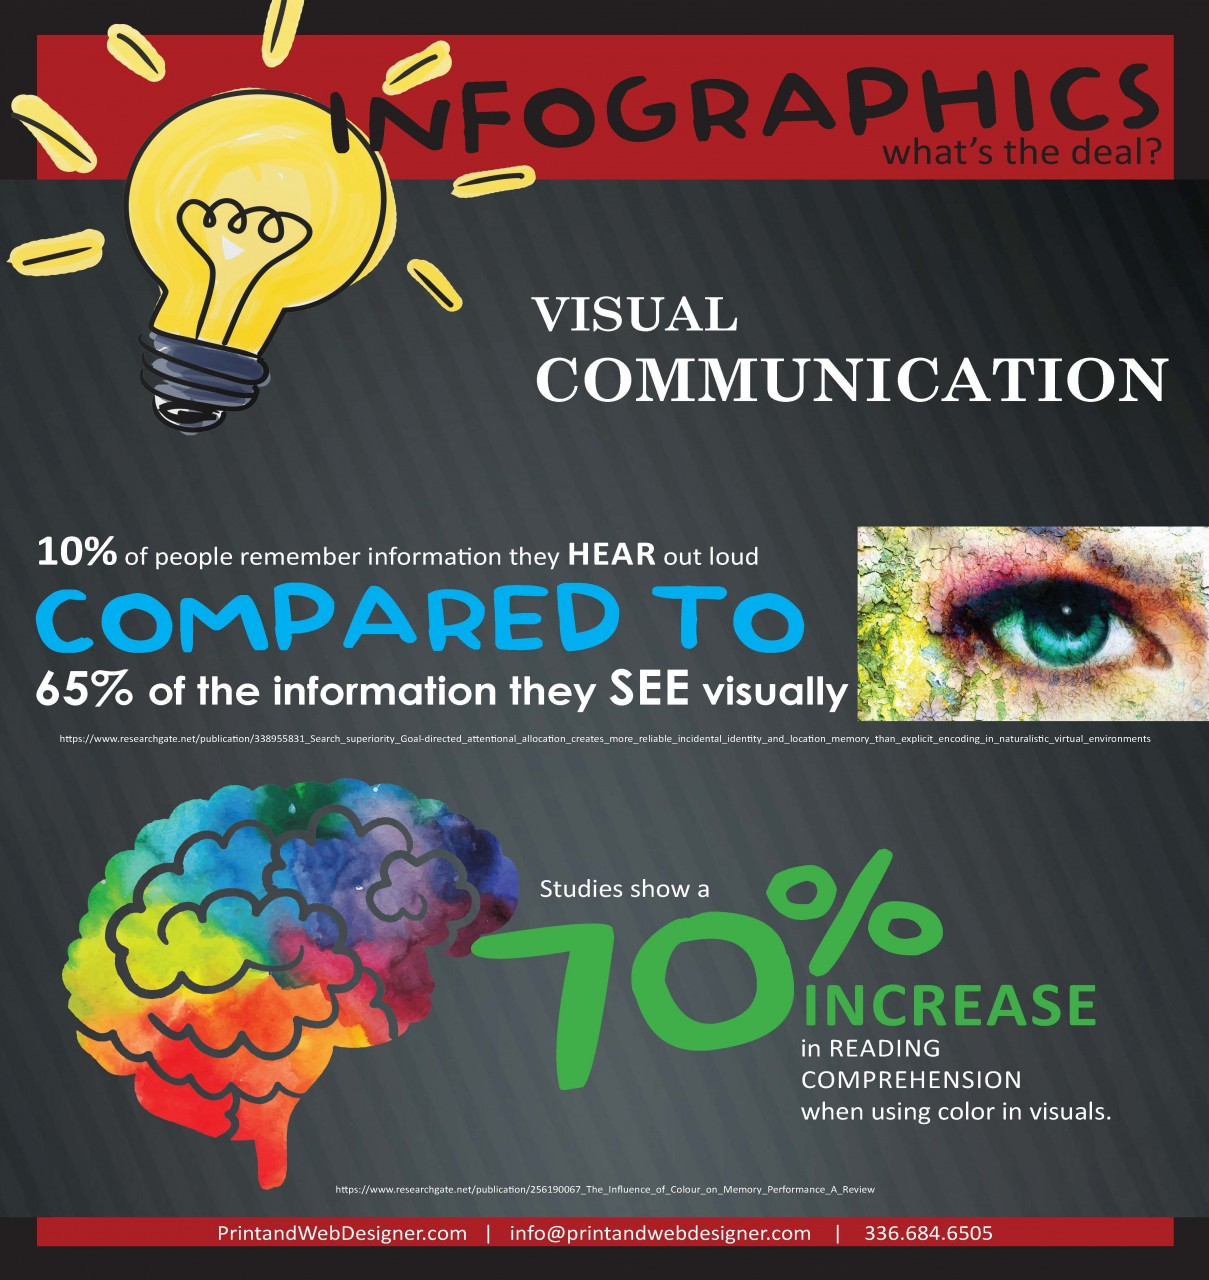 Infographics: Supplementing textual information